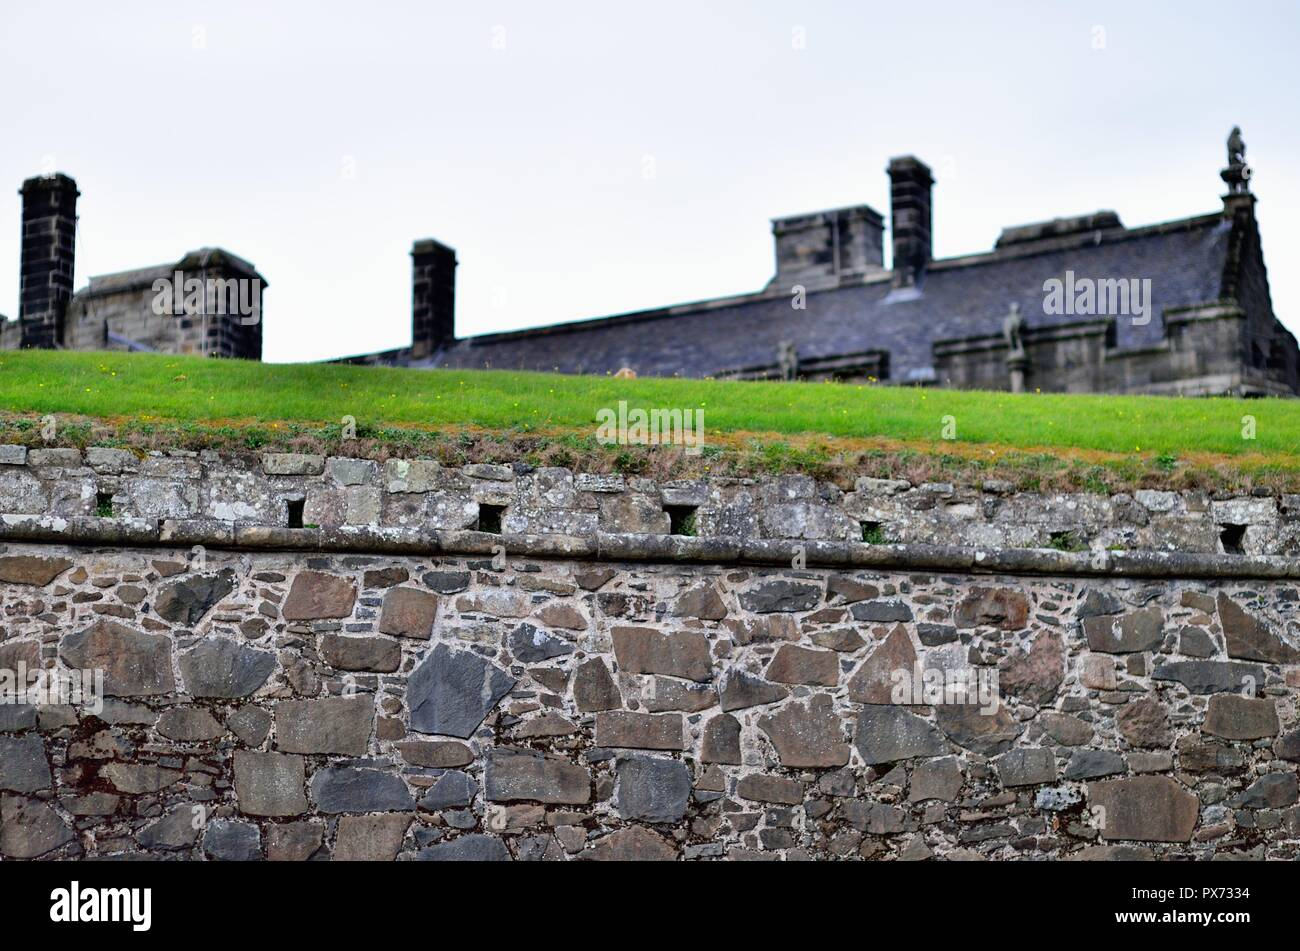 Stirling, Scotland, United Kingdom. An outer wall at Stirling Castle. The castle is certainly one of Scotland's most important castles. - Stock Image